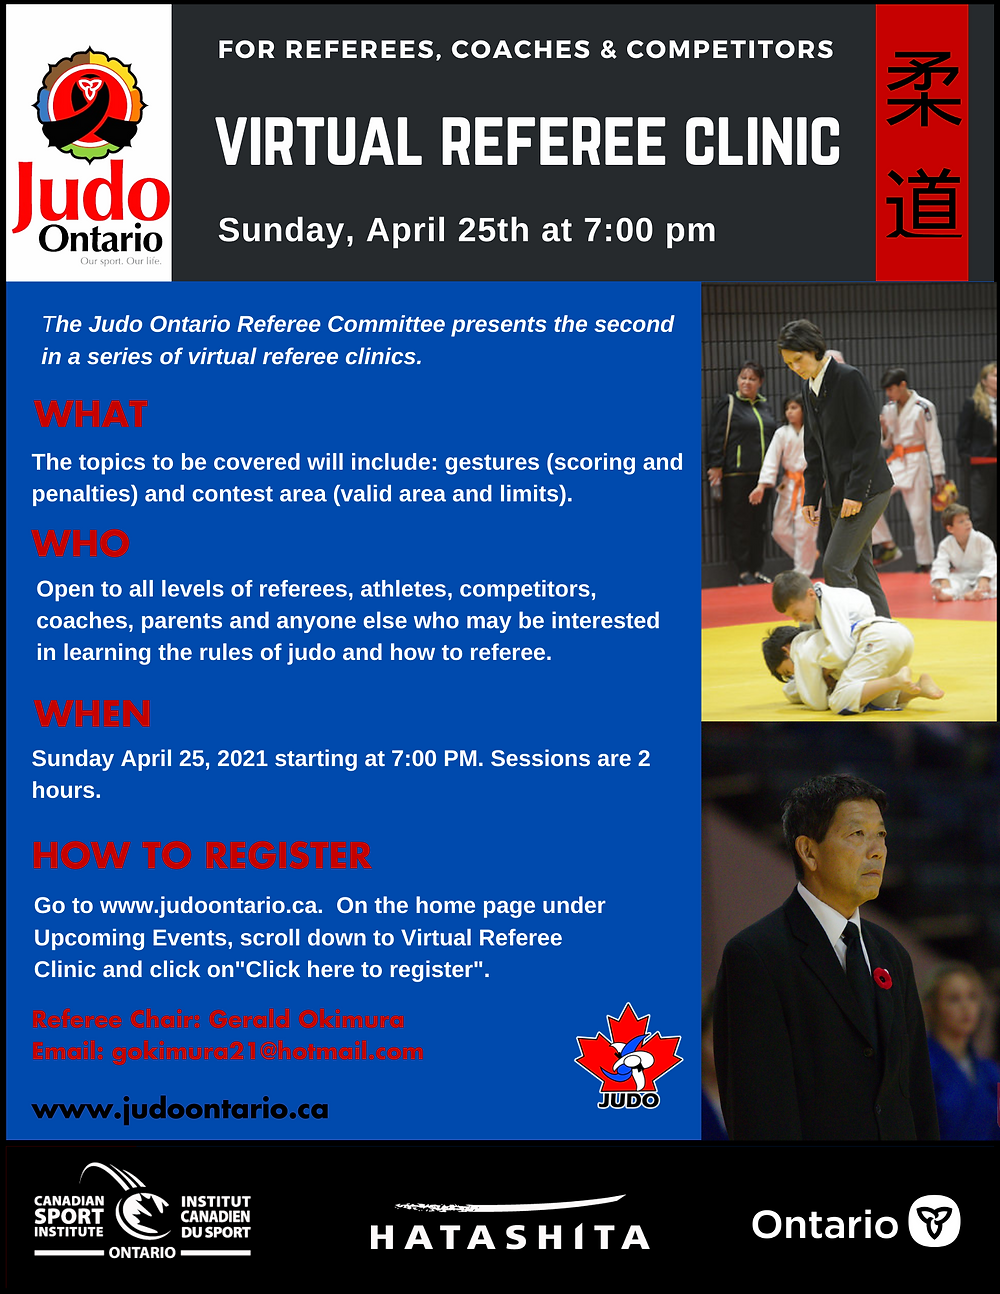 virtual referee clinic flyer - all text provided on page